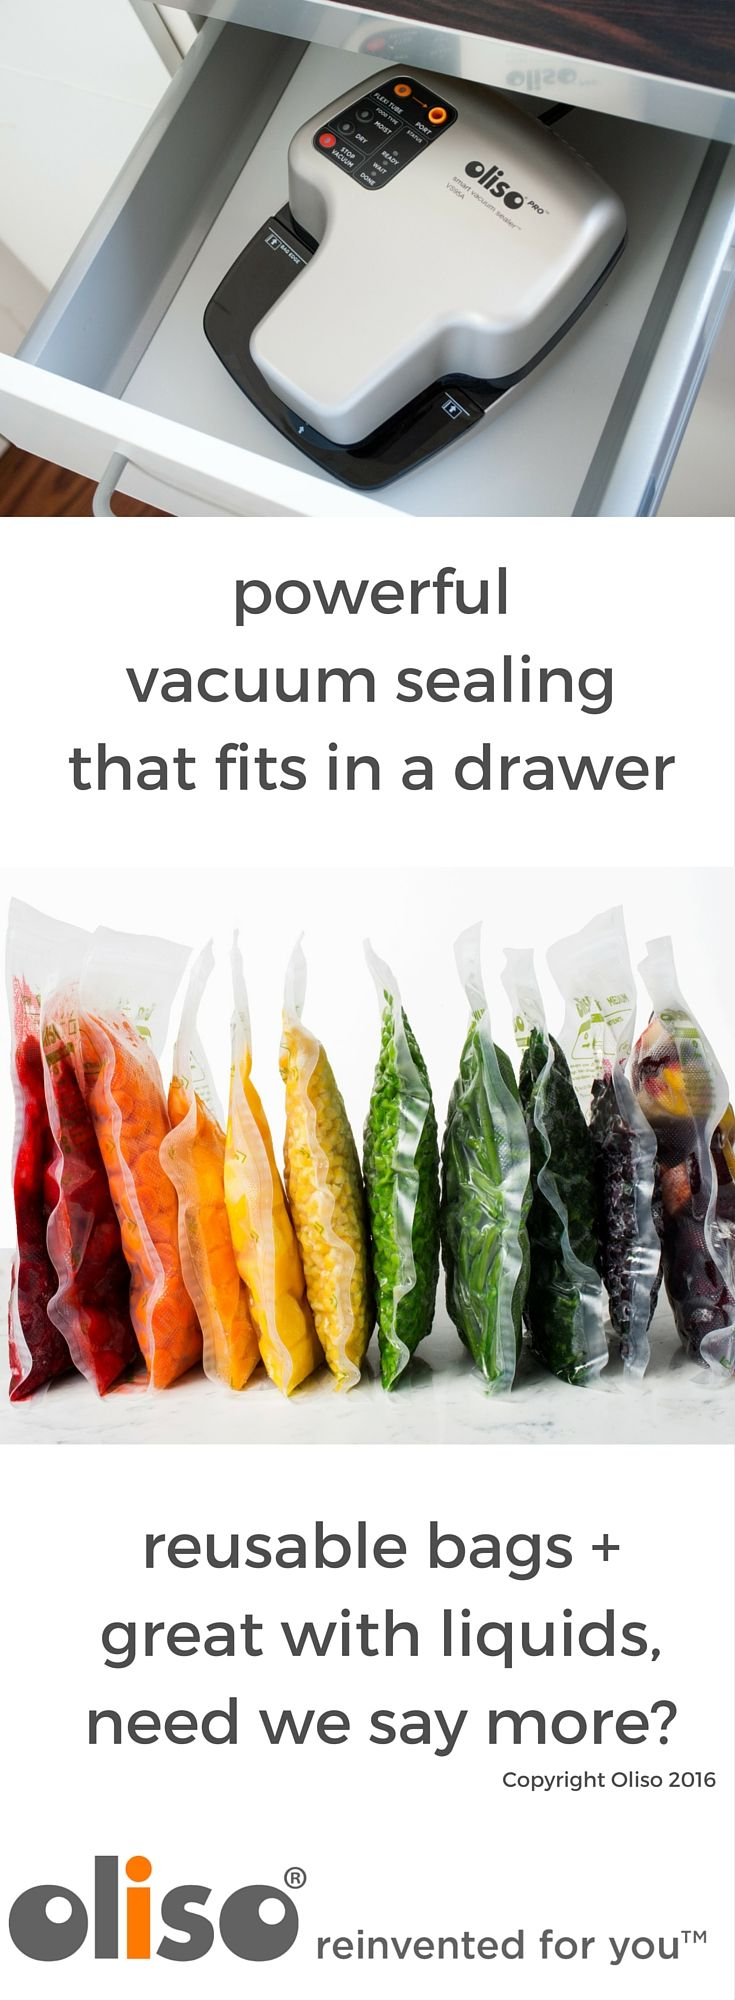 The Oliso Vacuum Sealer packs a powerful suction in a small profile.  Reusable, dishwasher safe zip top bags make portioning easy.  Dual motor, accessory port, and stop vacuum make getting the perfect seal a piece of cake!